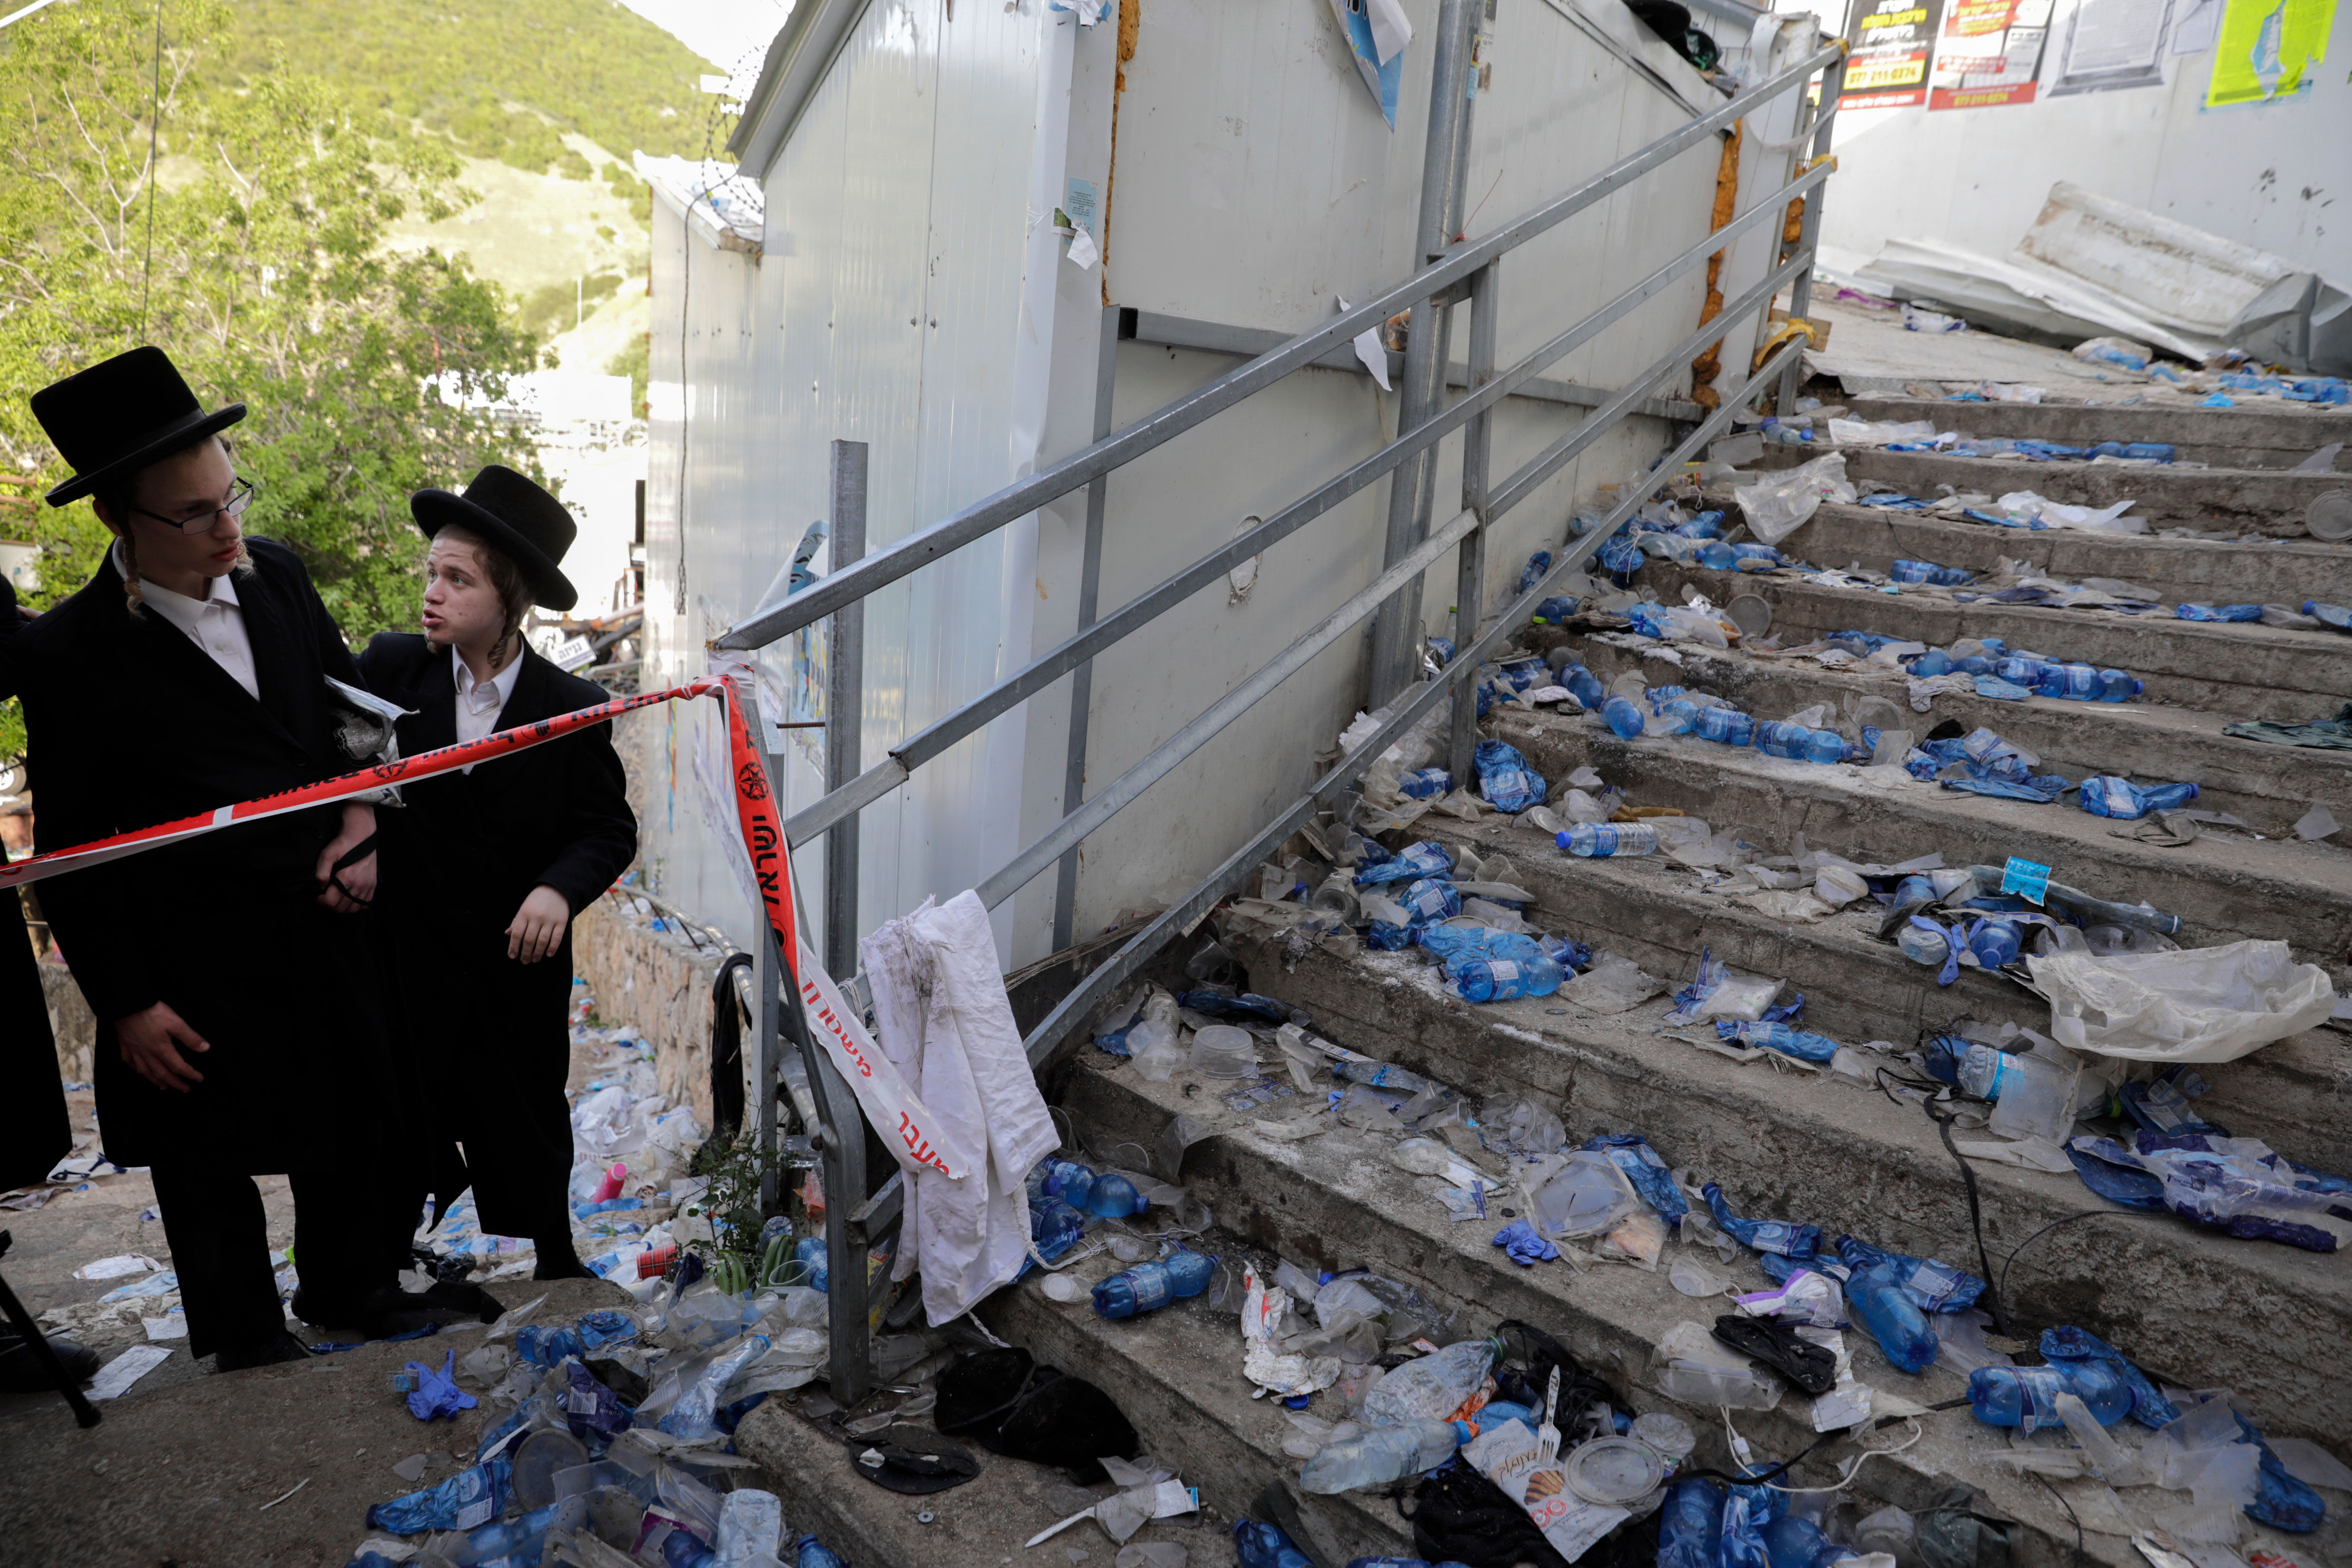 Ultra-Orthodox Jews look at the scene on April 30 following the Lag B'Omer festival on Mount Meron in Israel.